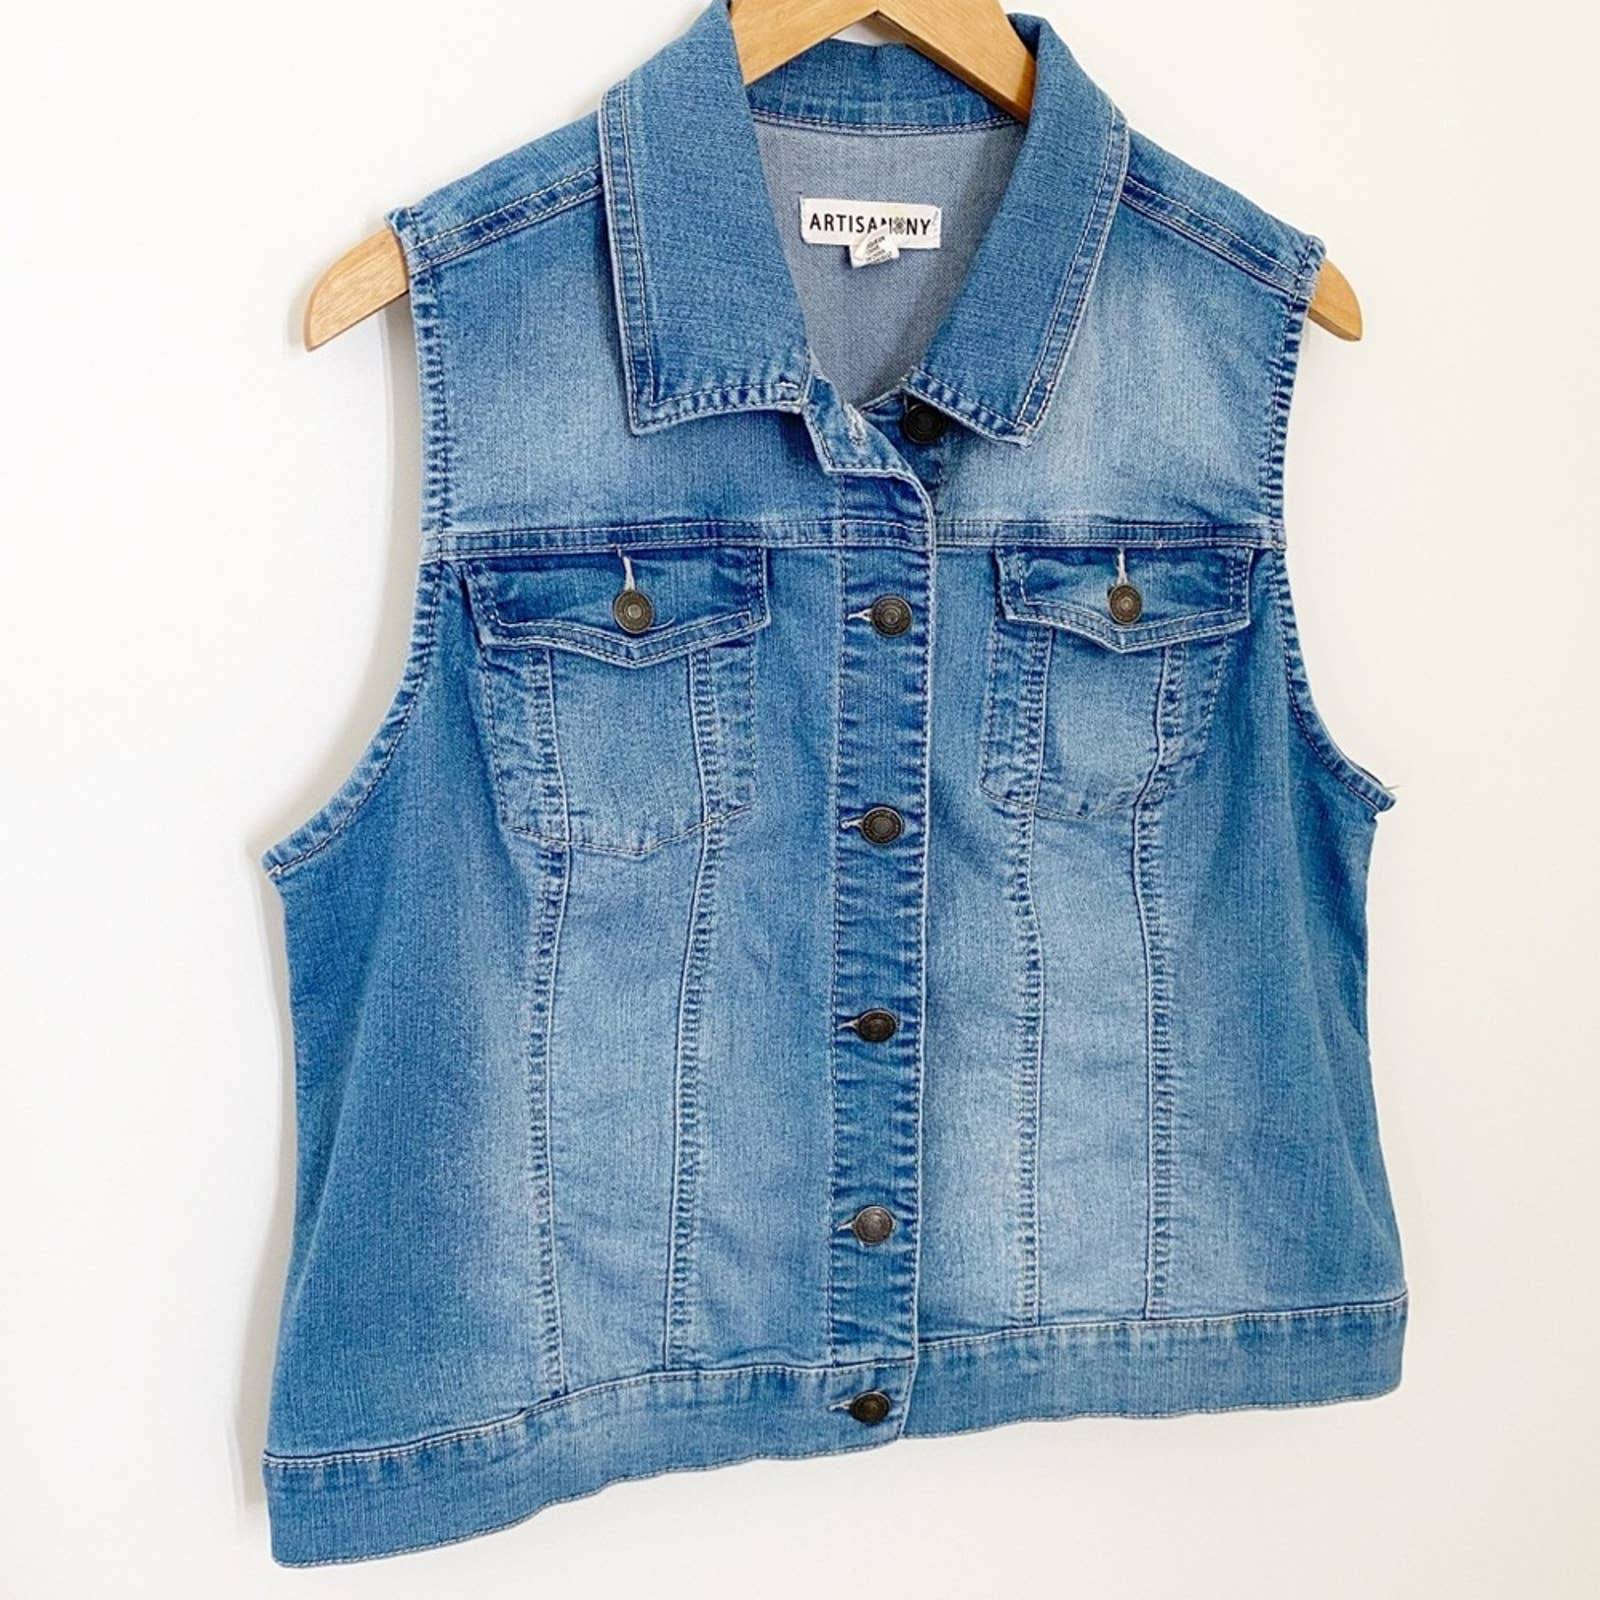 Artisan NY Denim Vest - Like New